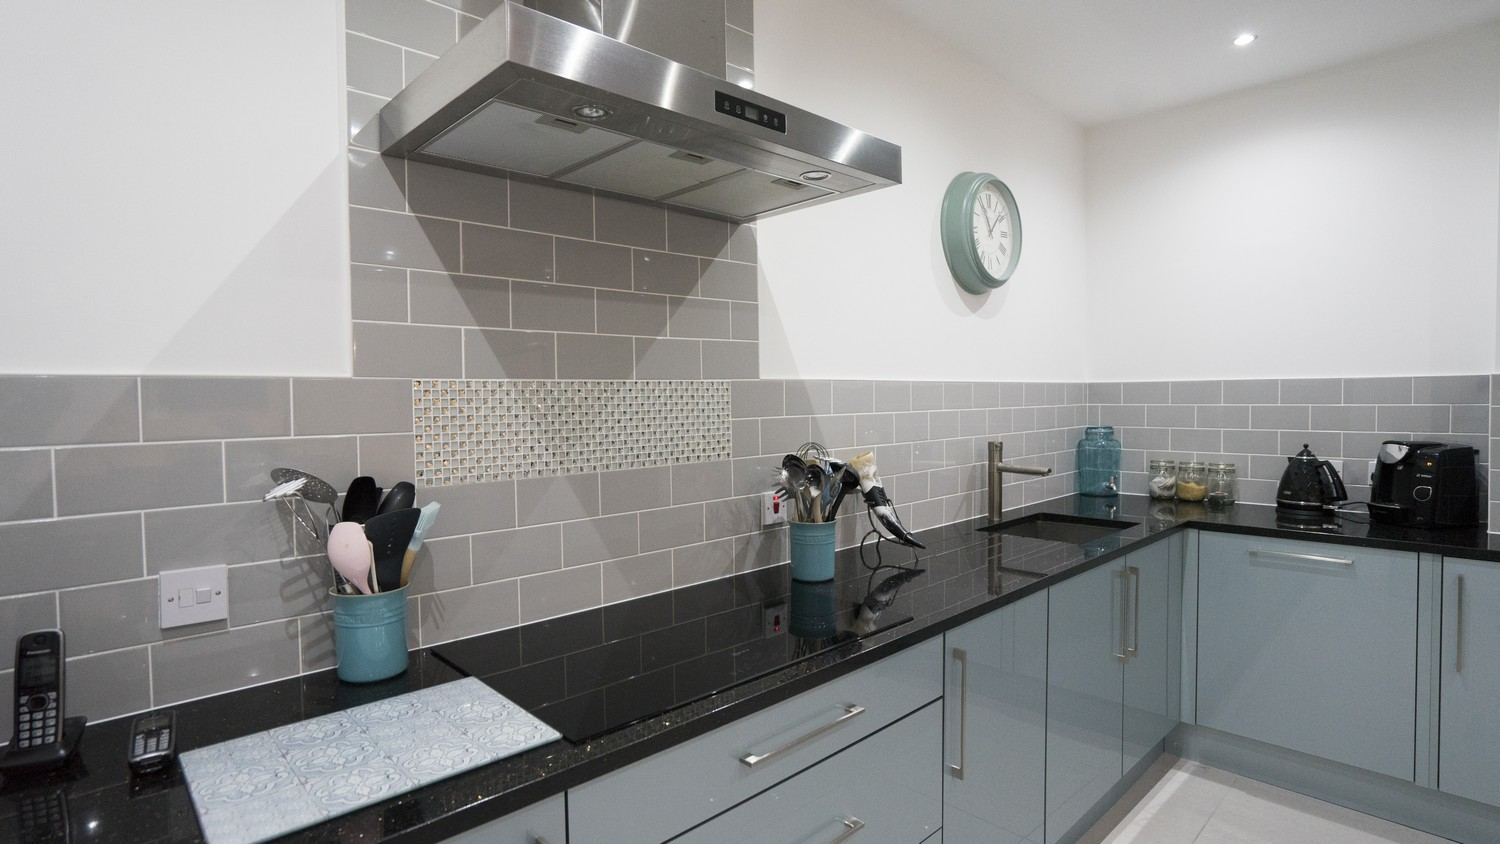 Close up of the ceramic hob and extractor fan installed in this modern kitchen.